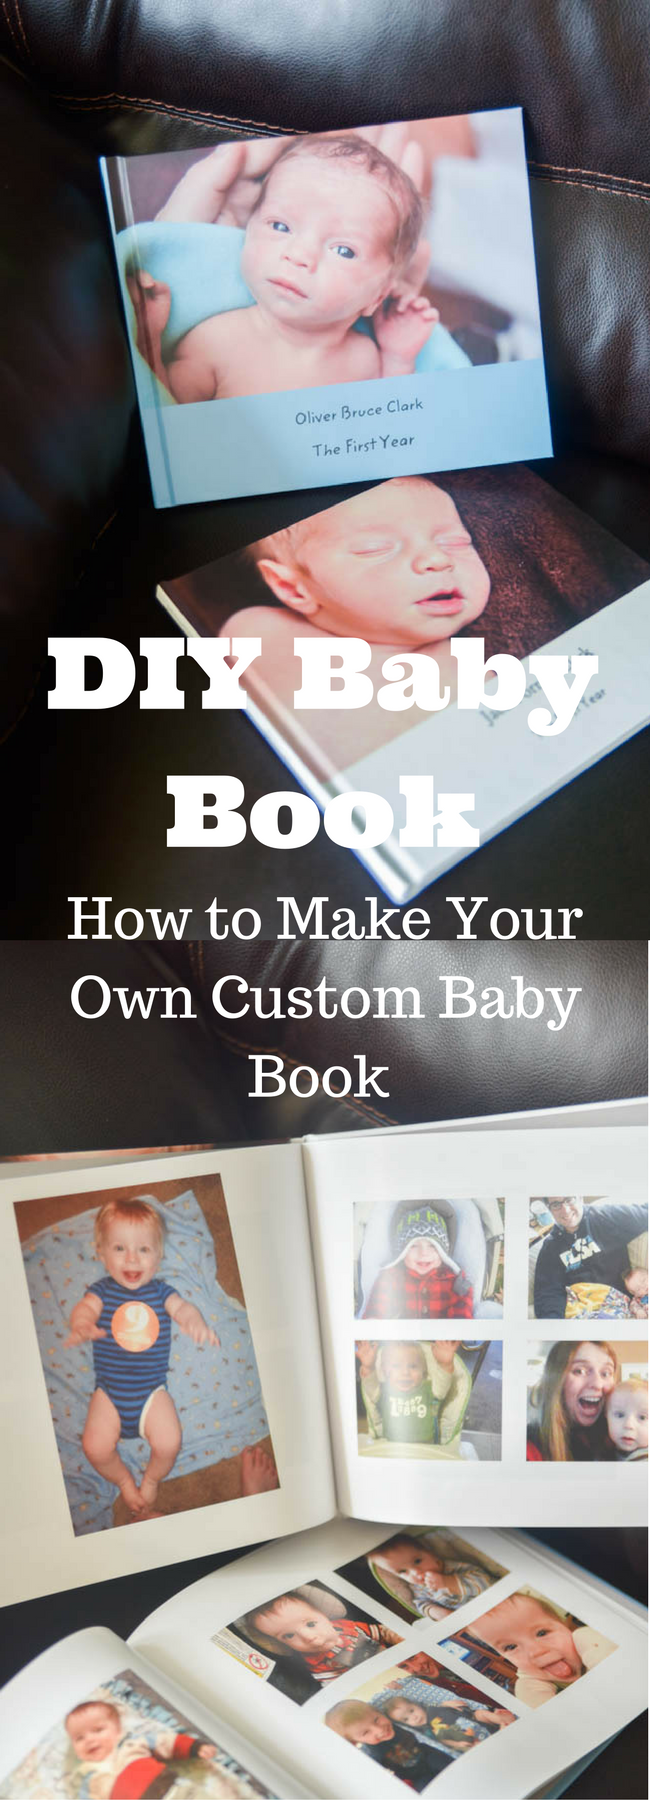 DIY Baby Book / Baby Book Ideas / DIY Baby Book Ideas / Baby's First Year / Make Your own Baby Book / Baby Book Page Ideas via @clarkscondensed